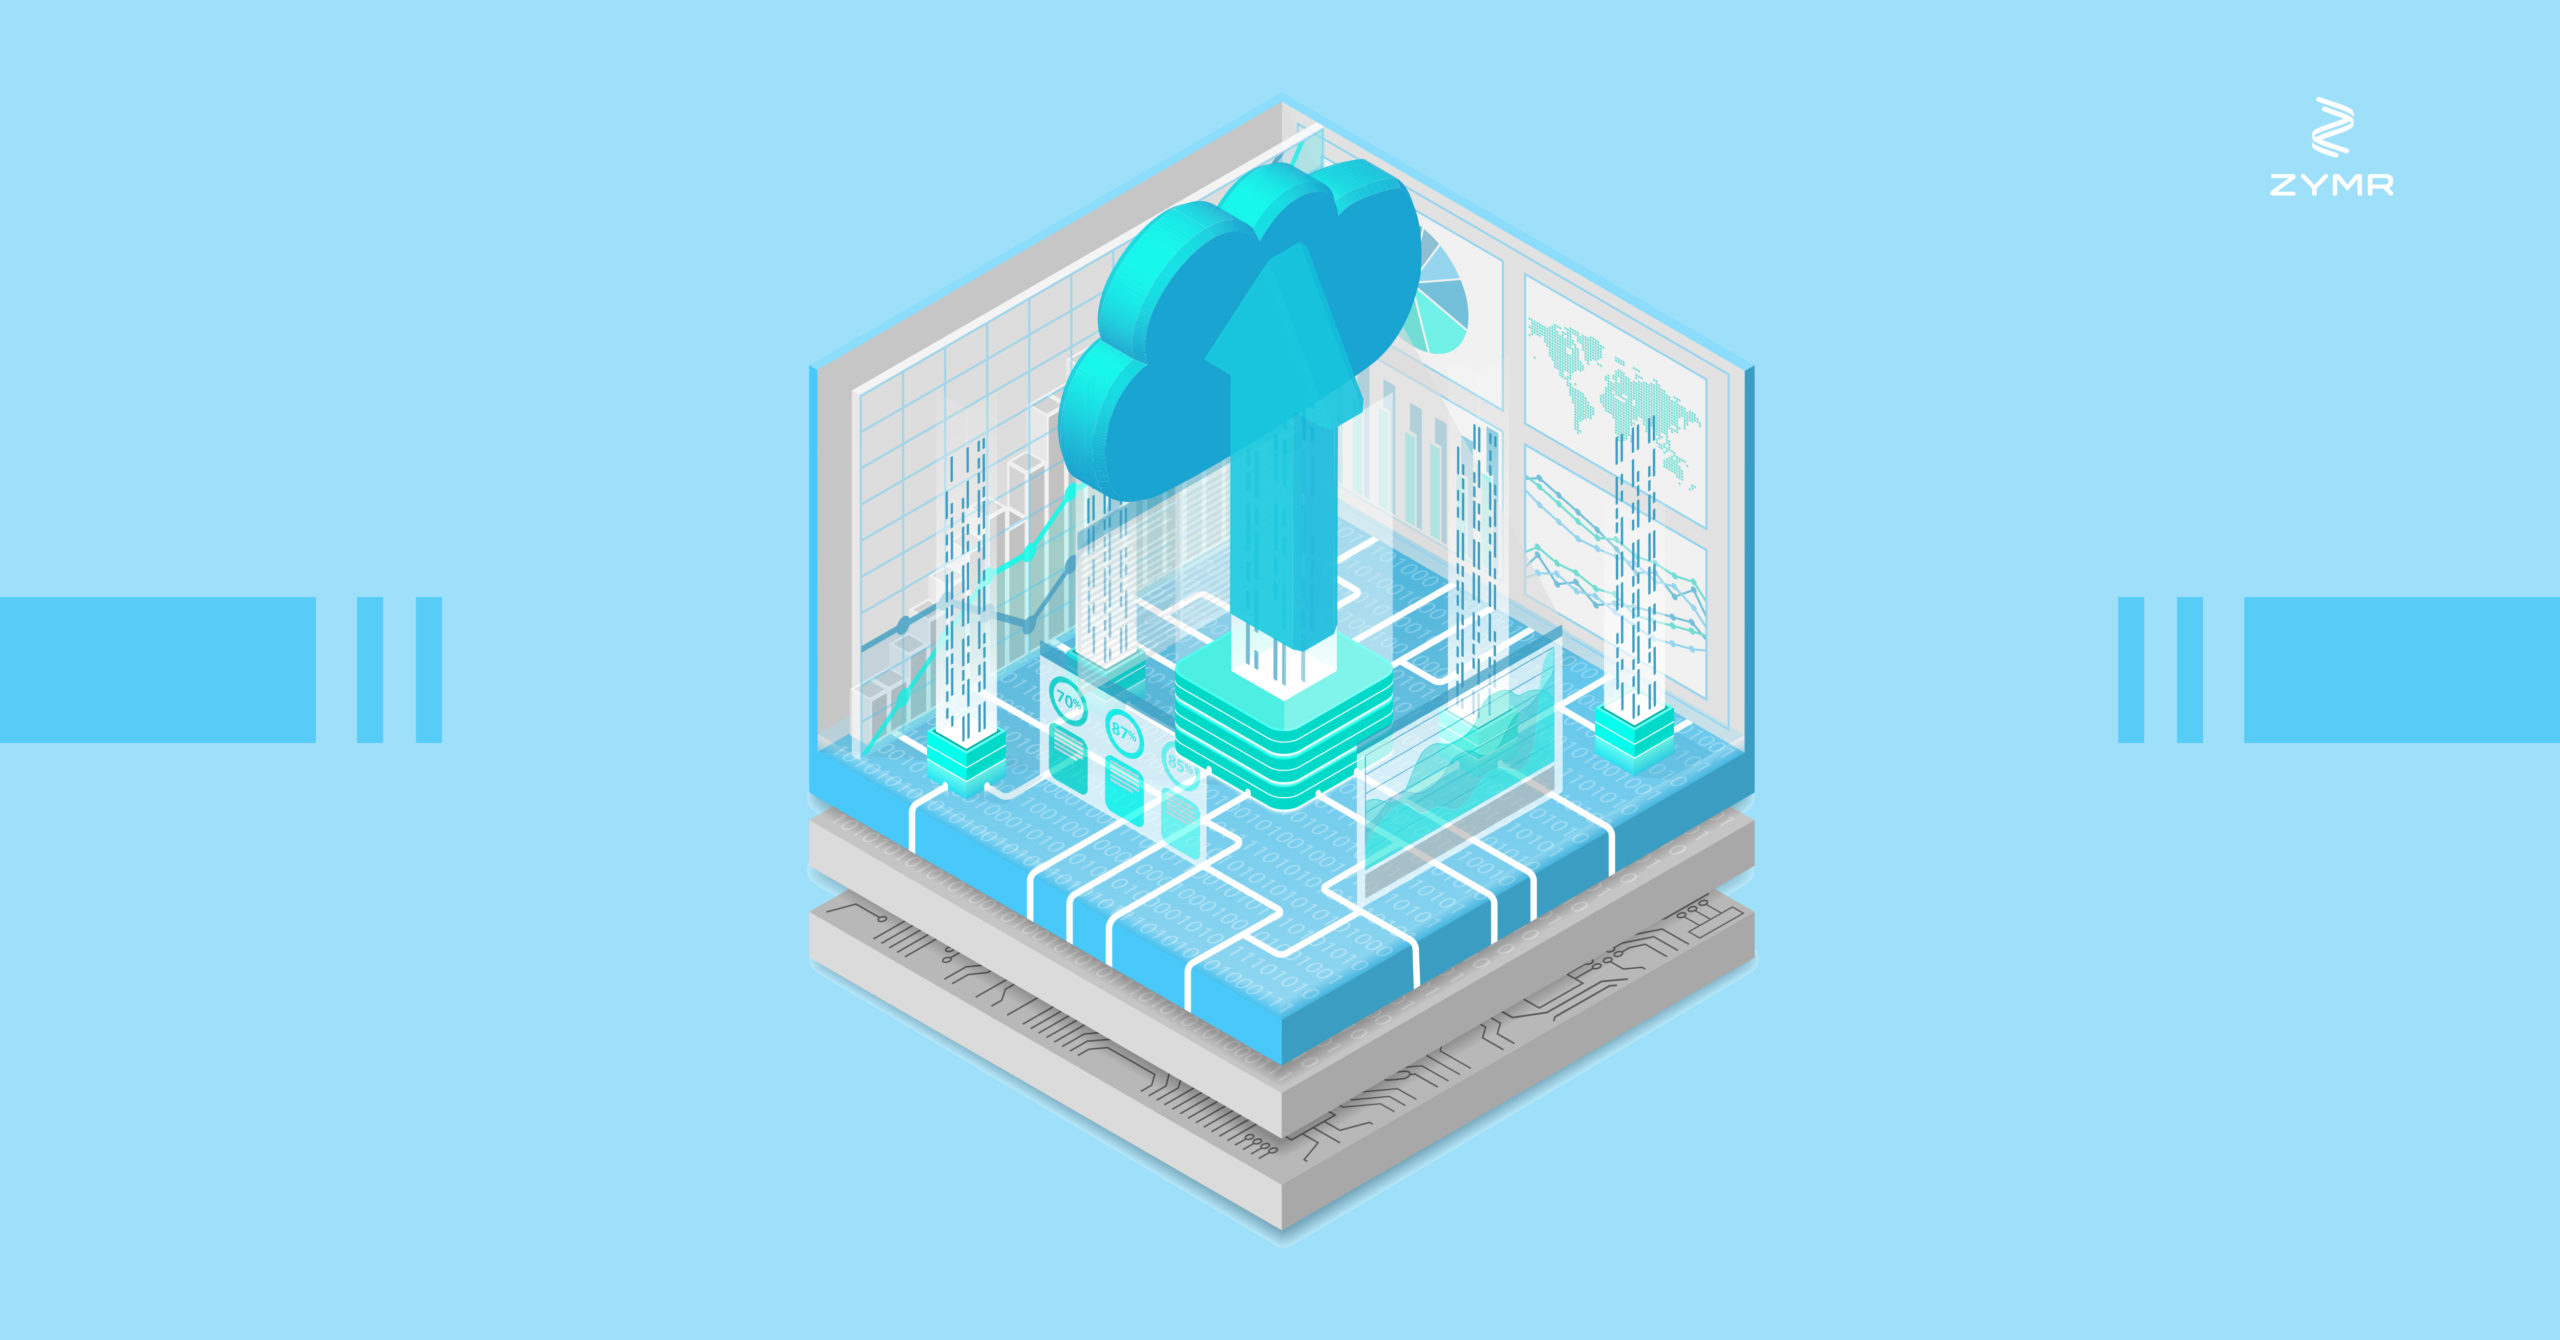 Legacy application migration to cloud-native